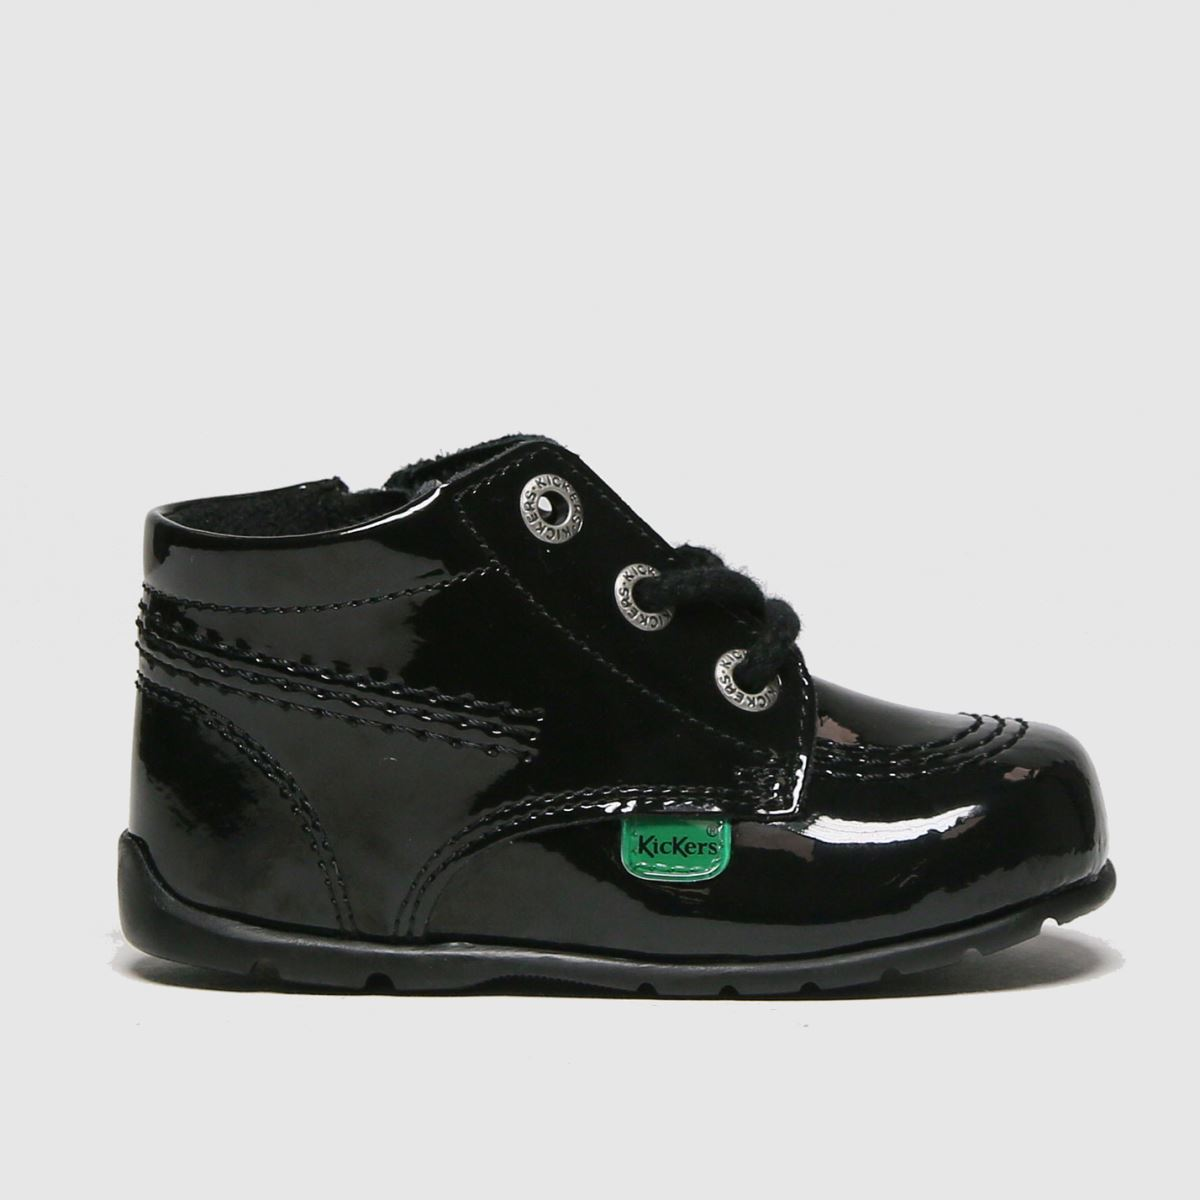 Kickers Black Hi B Zip Lthr Shoes Baby